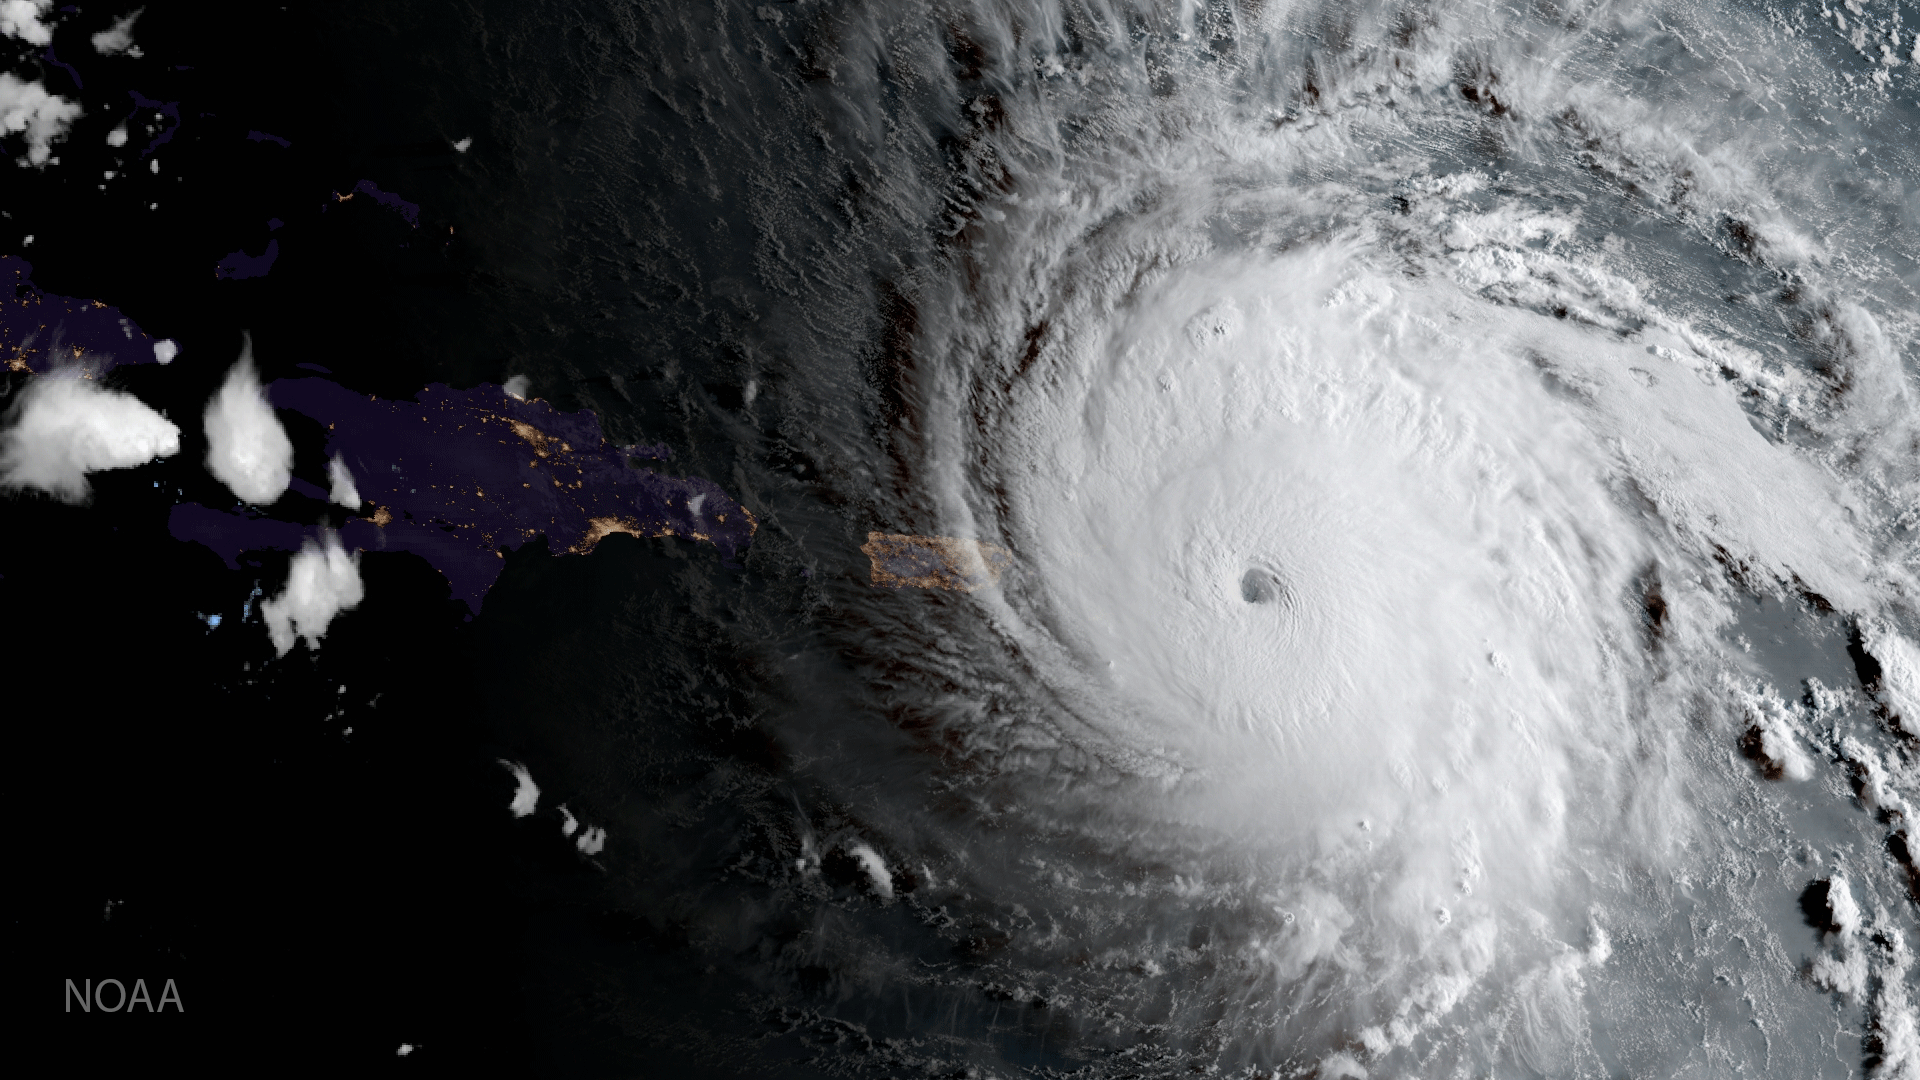 GOES 16 captured this geocolor image of Hurricane Irma approaching Anguilla on Sept. 6, 2017. Photo: NOAA.